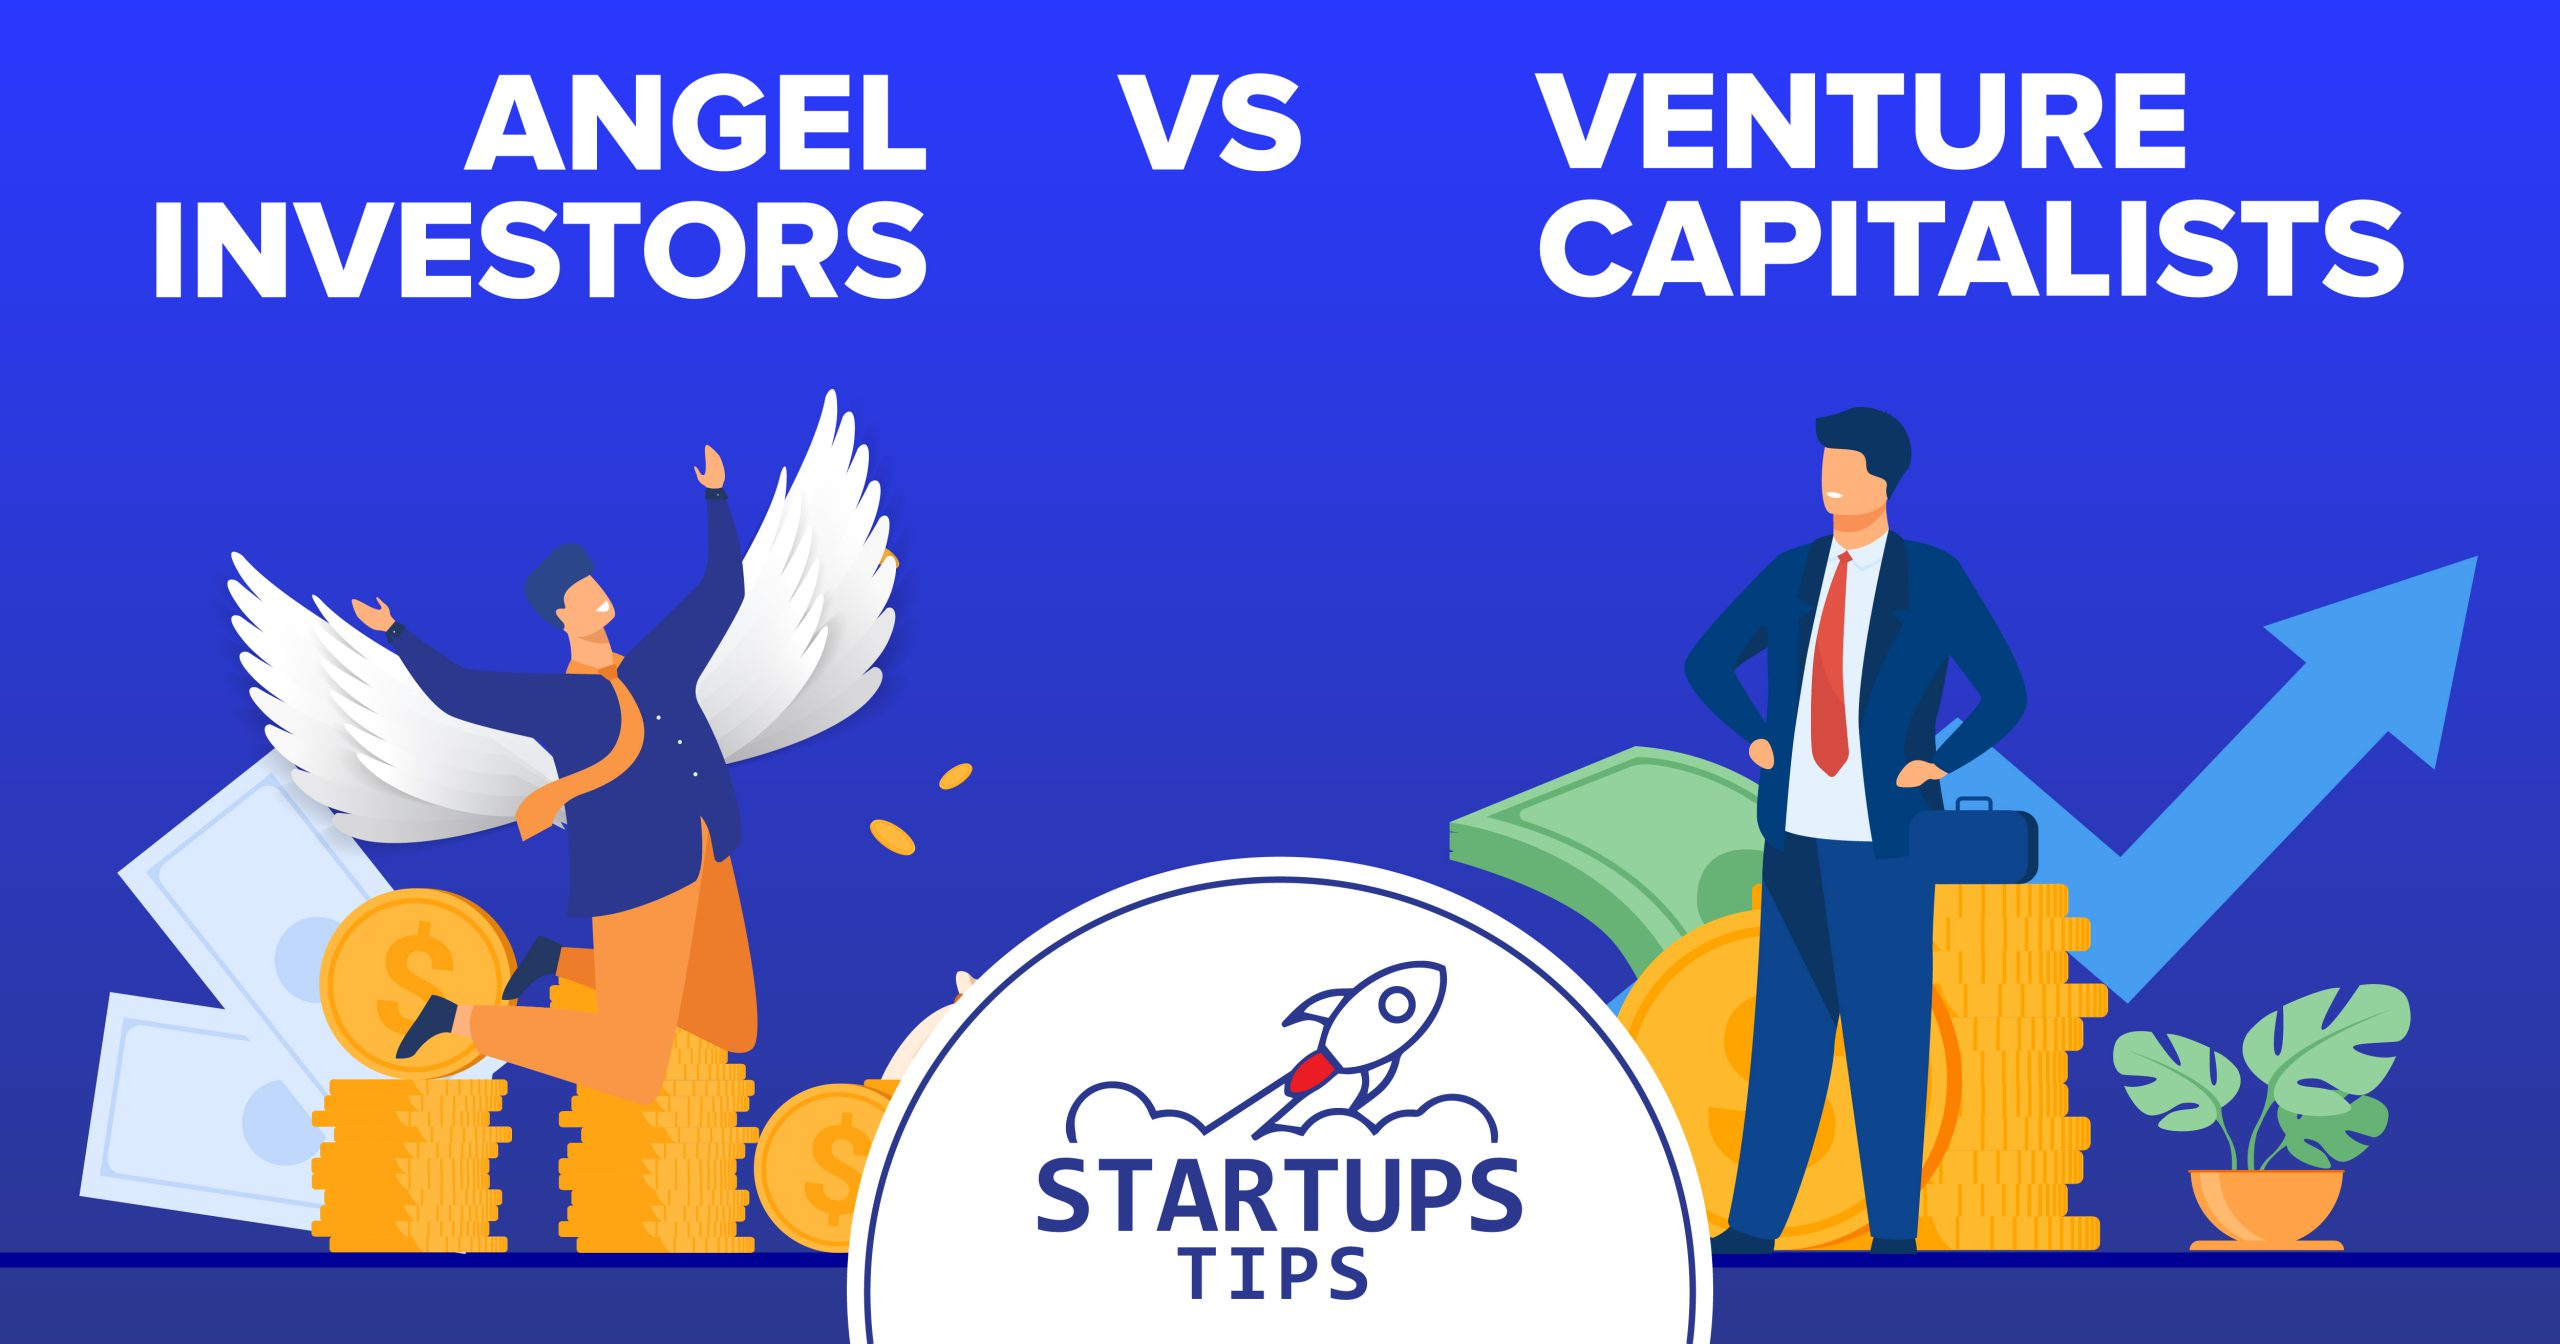 Angel Investors VS Venture Capitalists: 7 Great Differences